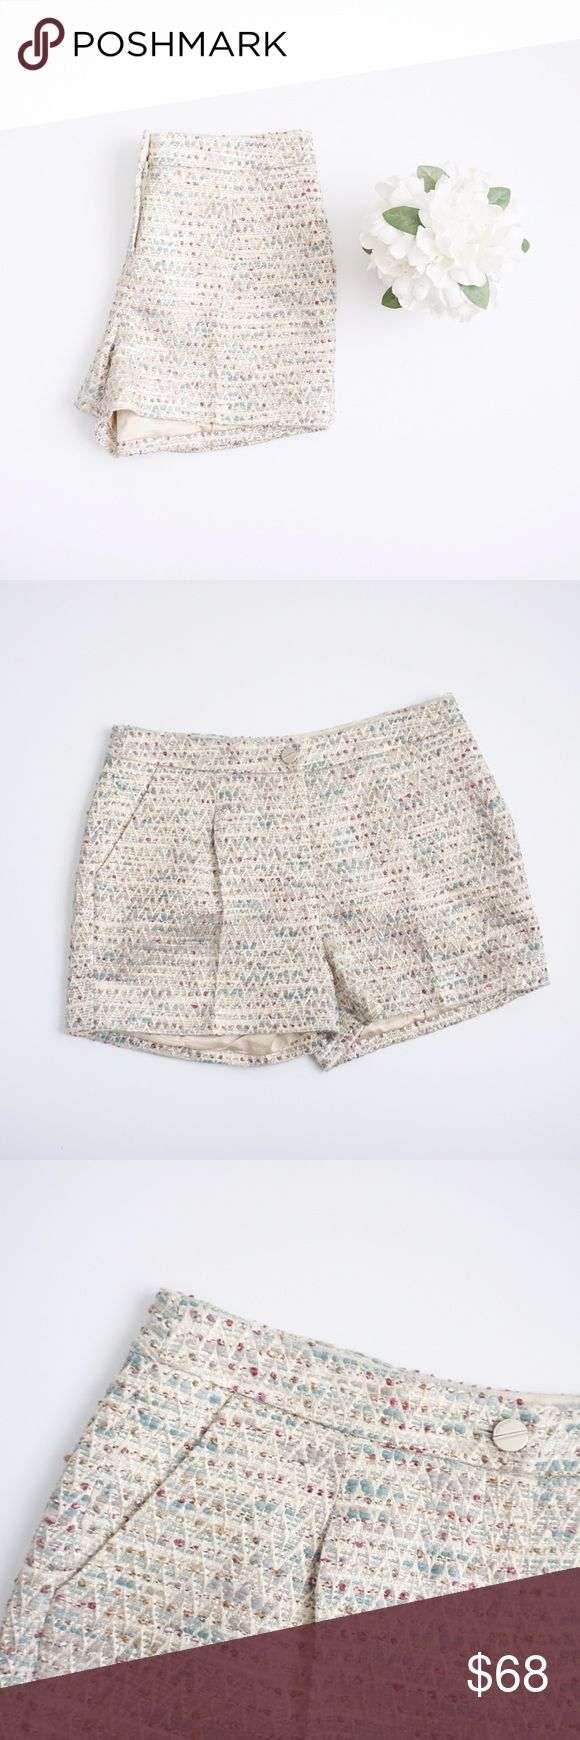 Ted Baker Metallic Tweed Shorts Ted Baker metallic tweed shorts size 3. Please look at measurements. Inseam 3 inches, waist 16 inches, rise 11.5 inches. Polyester, viscose, acrylic, cotton and other fibers. Chino work short style. No stains or holes, excellent condition. Ted Baker Shorts